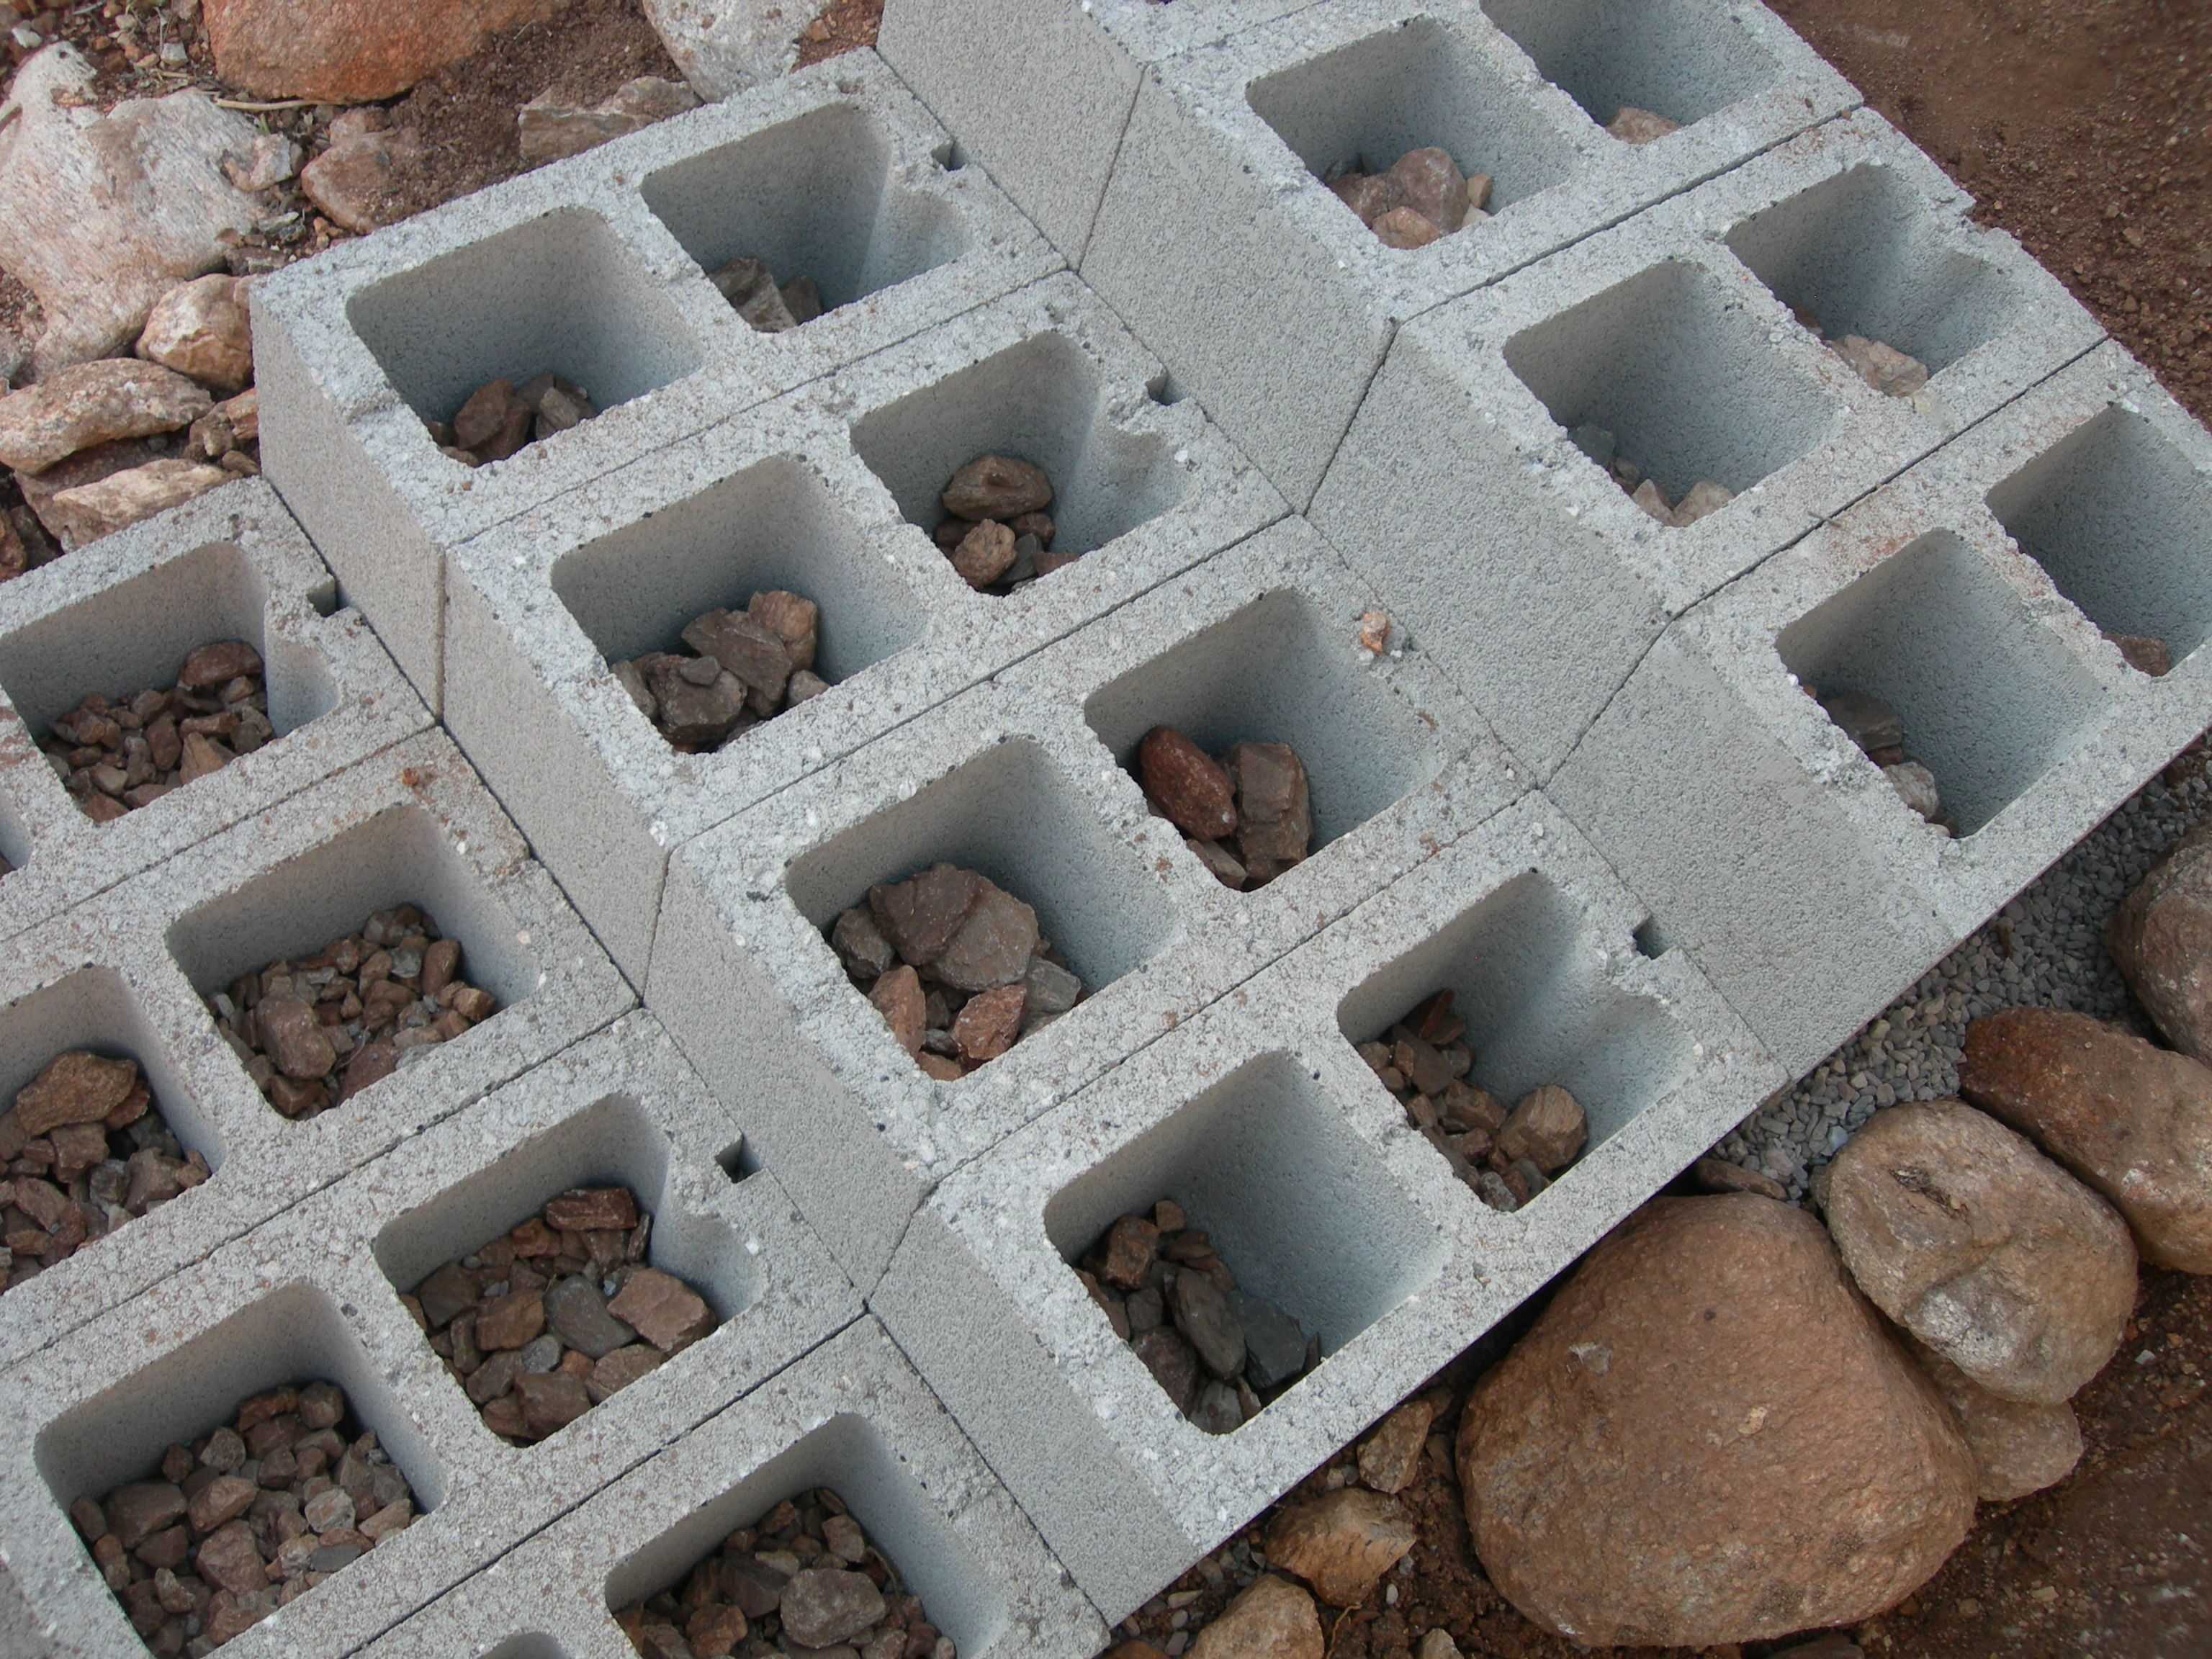 Dirt, rocks, stairs. Spring ProjectsEasy Diy ProjectsProject IdeasCinder  BlocksCinder ...